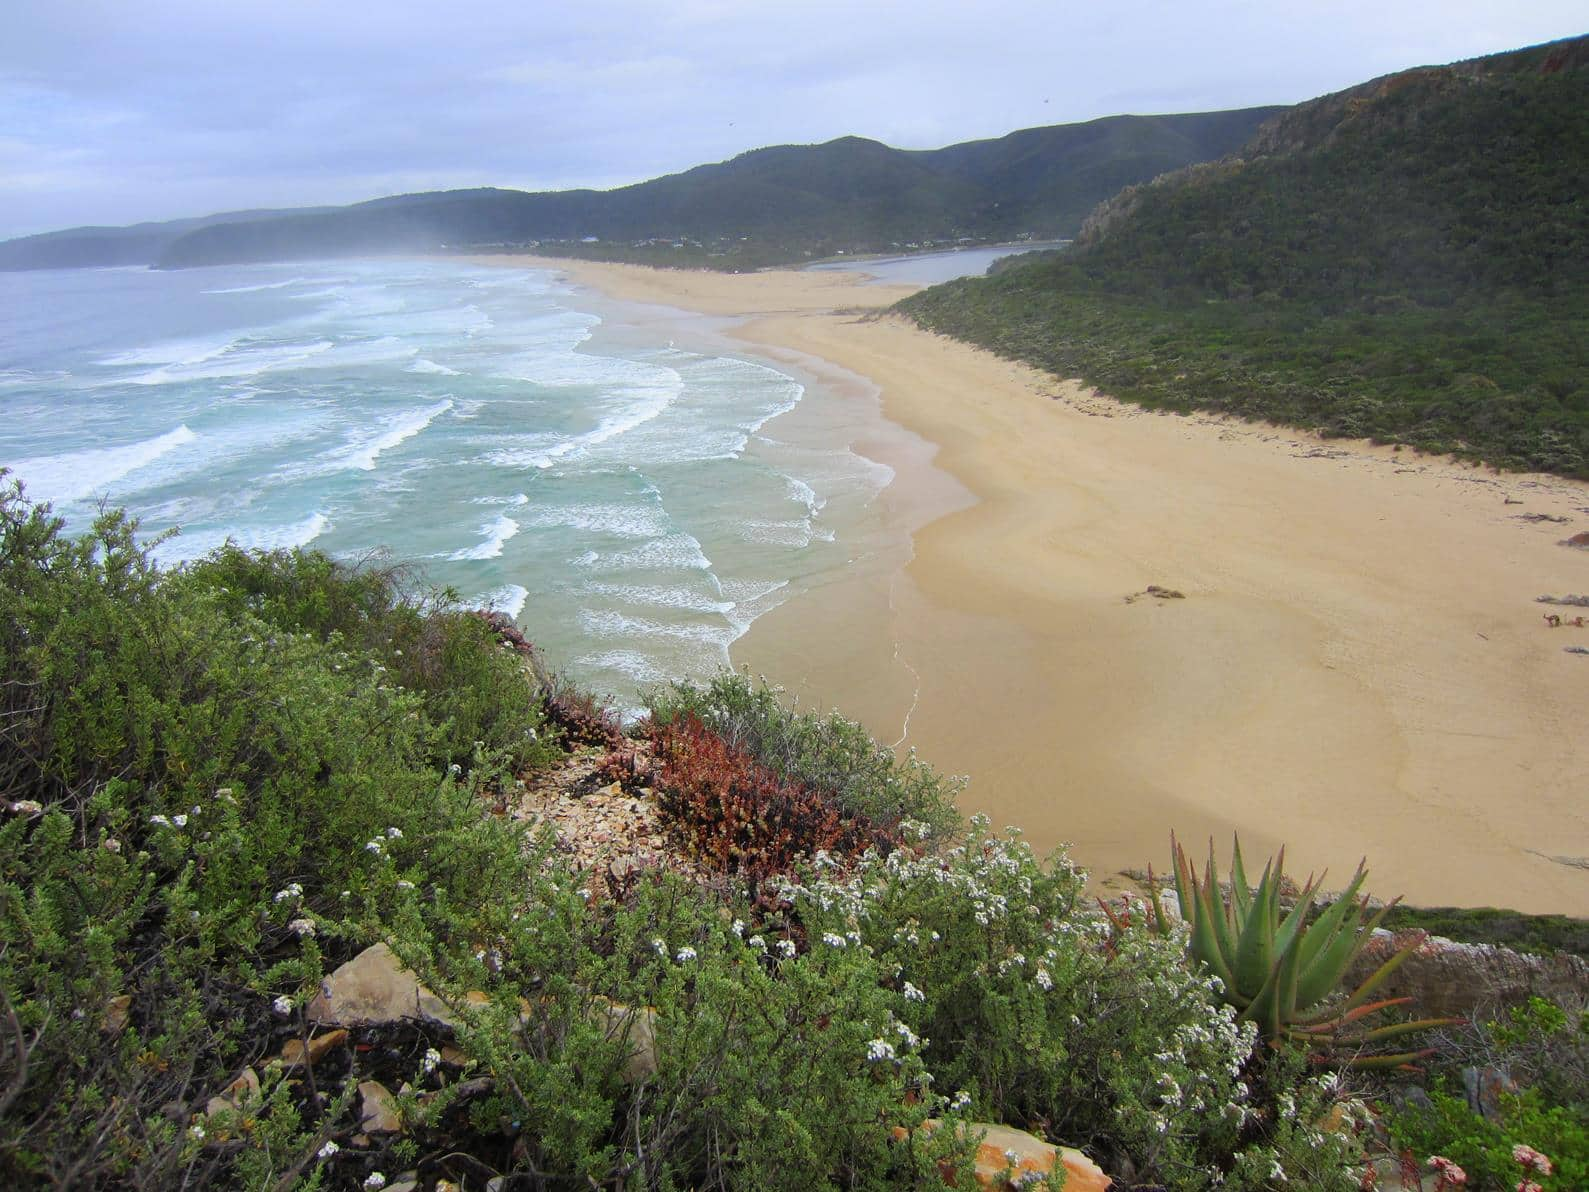 The trail ends with a relaxing walk on the stretched out beach of Nature's Valley.